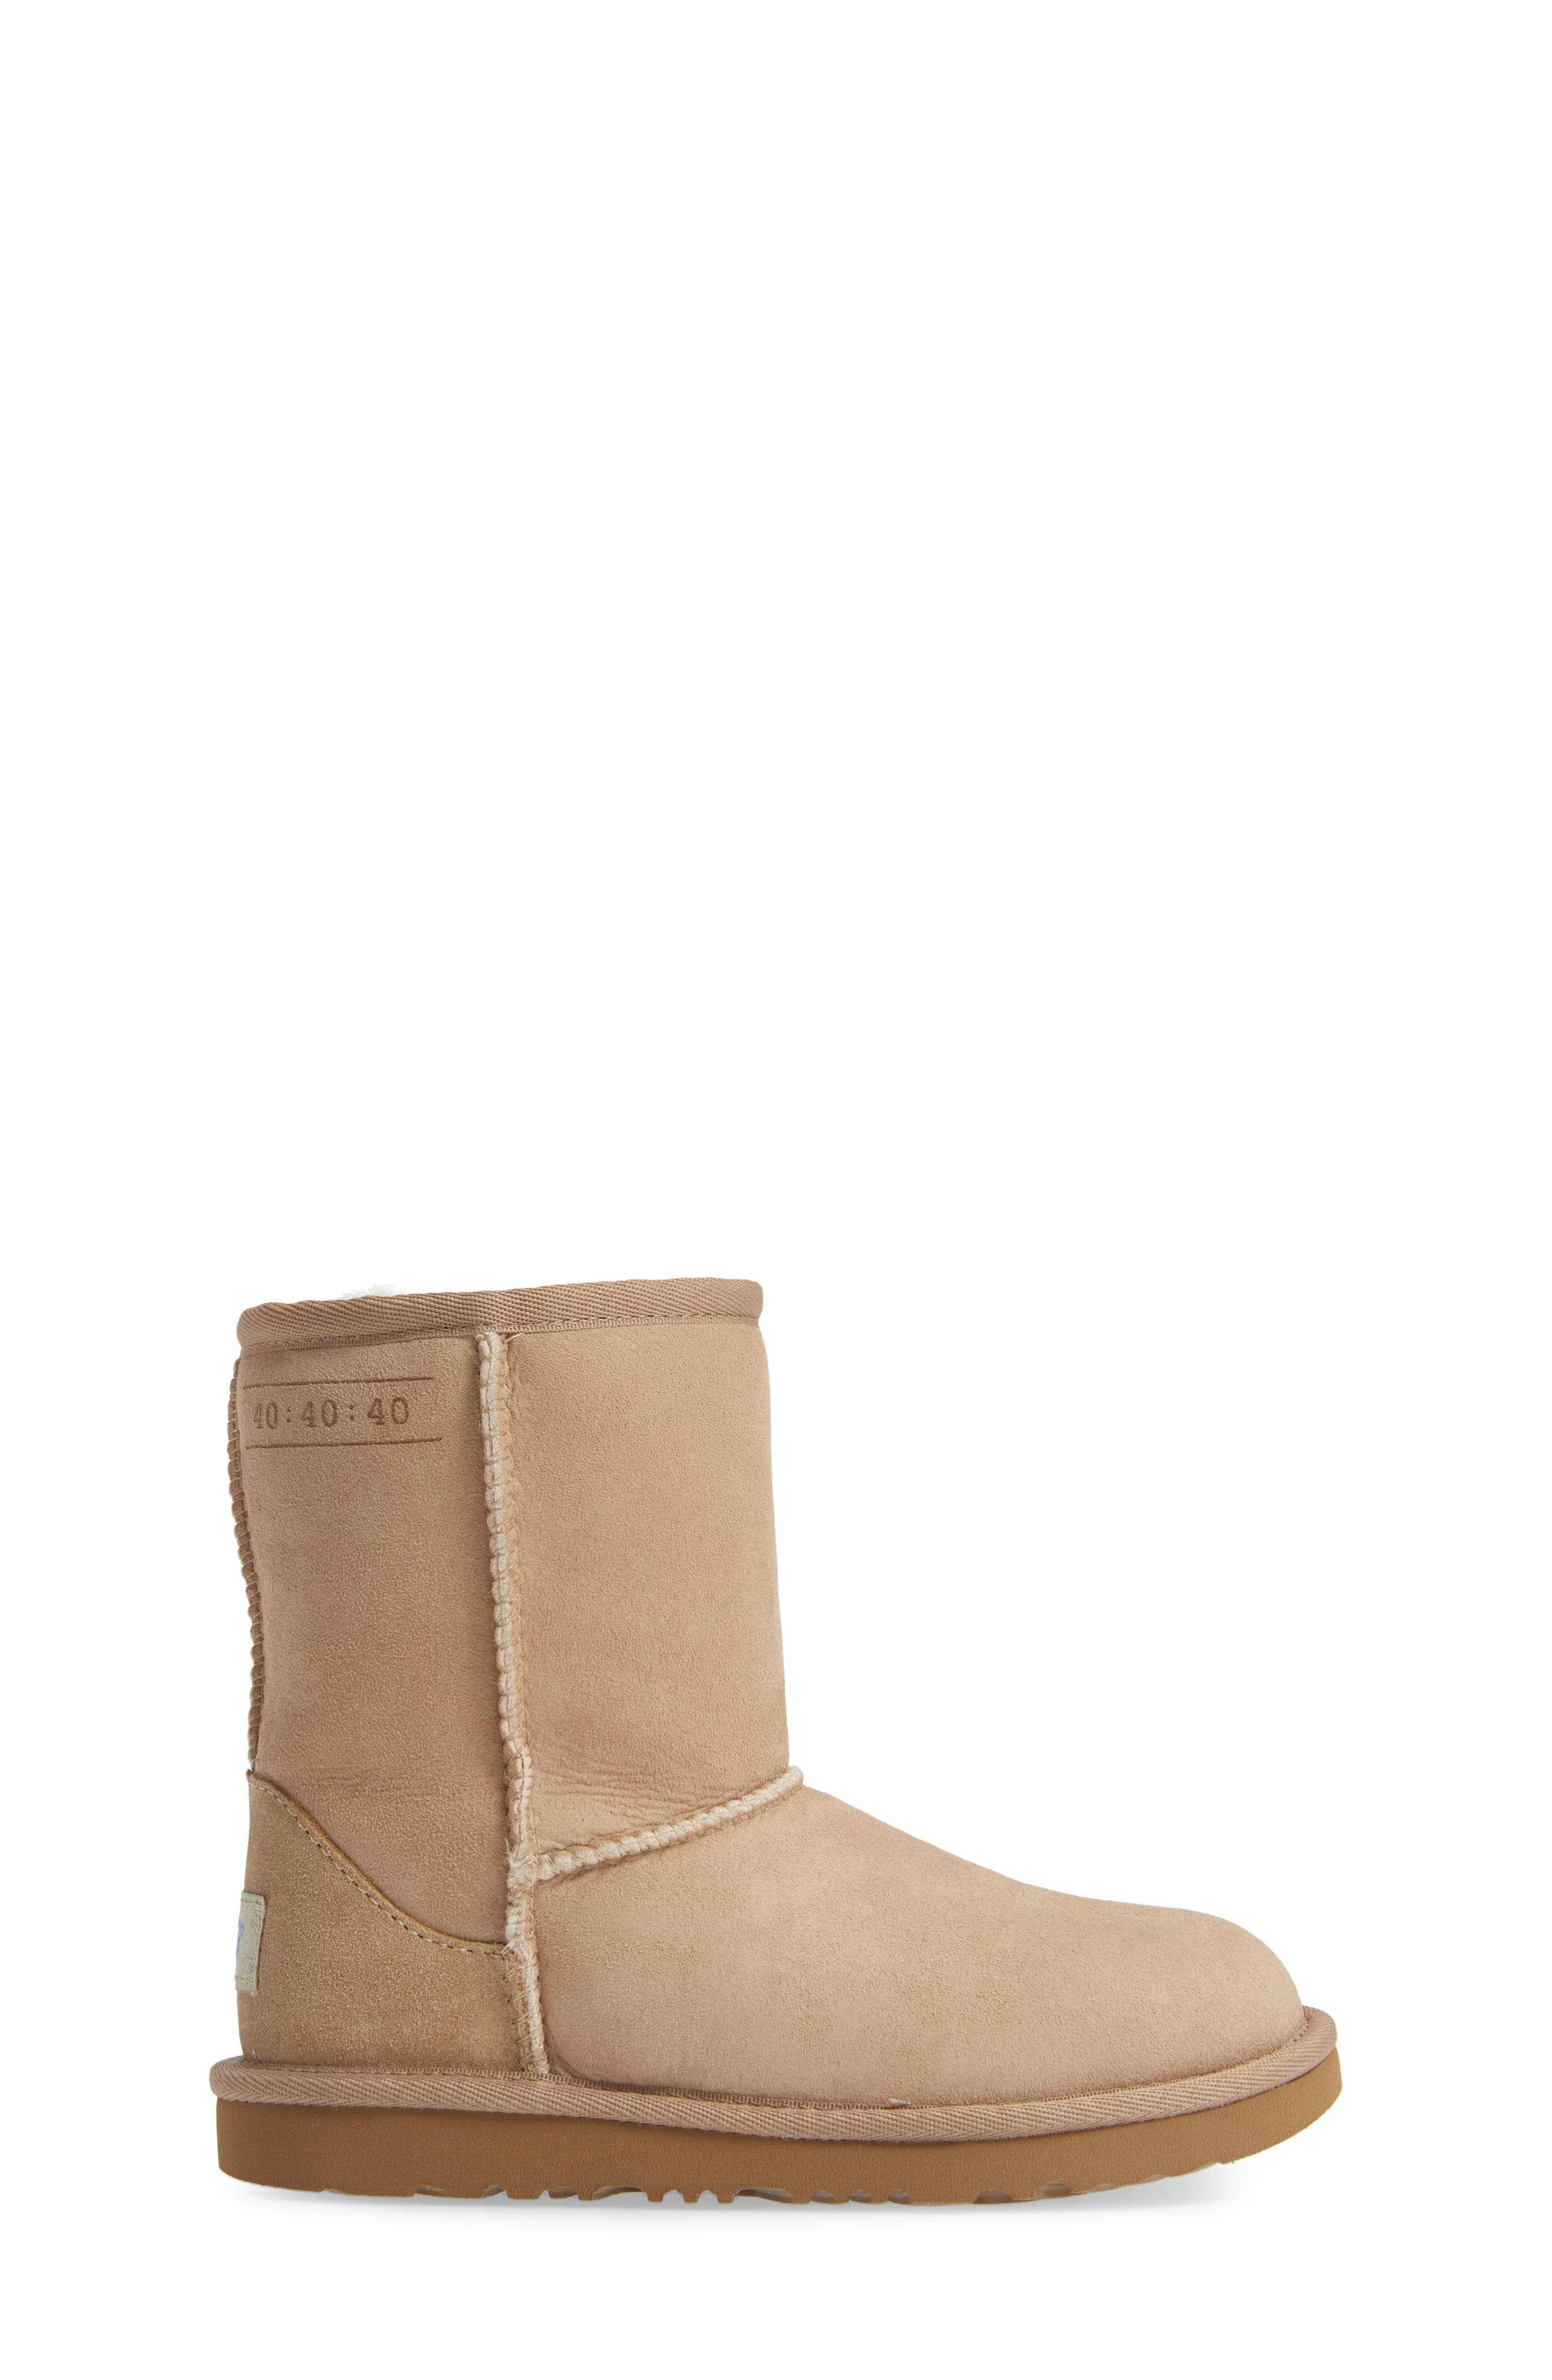 Classic II 40:40:40 Anniversary Boot,                             Alternate thumbnail 3, color,                             SAND